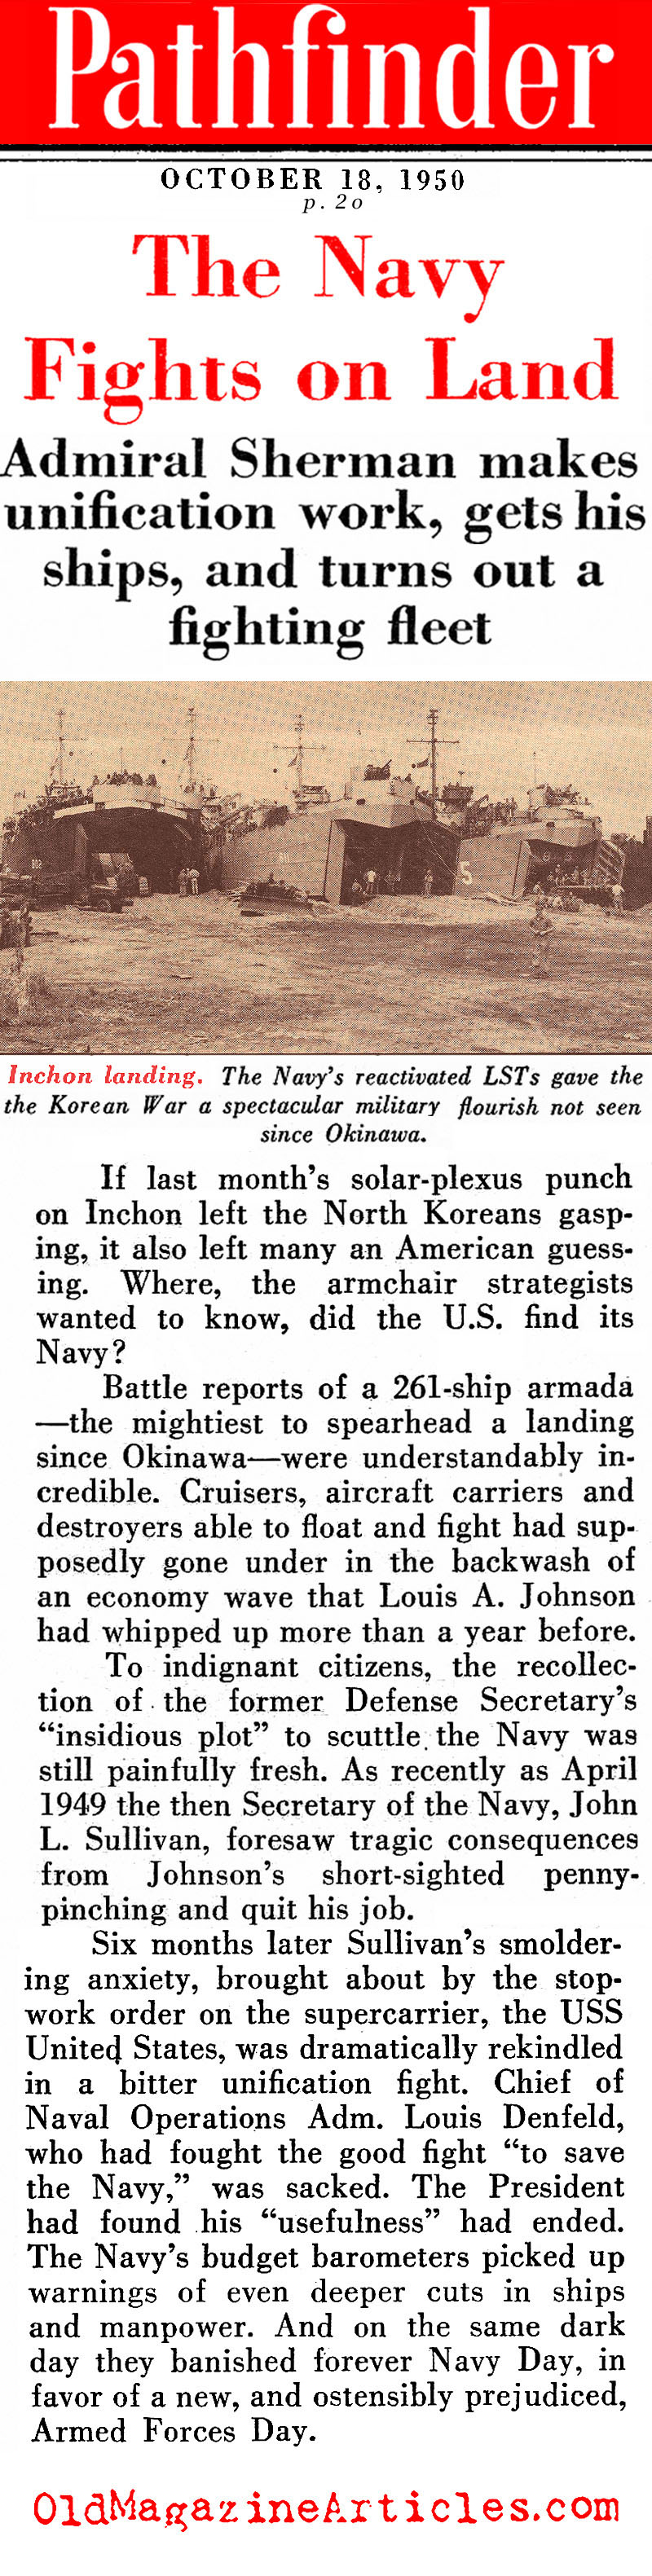 Korea: The Contributions of the U.S. Navy<BR> (Pathfinder Magazine, 1950)